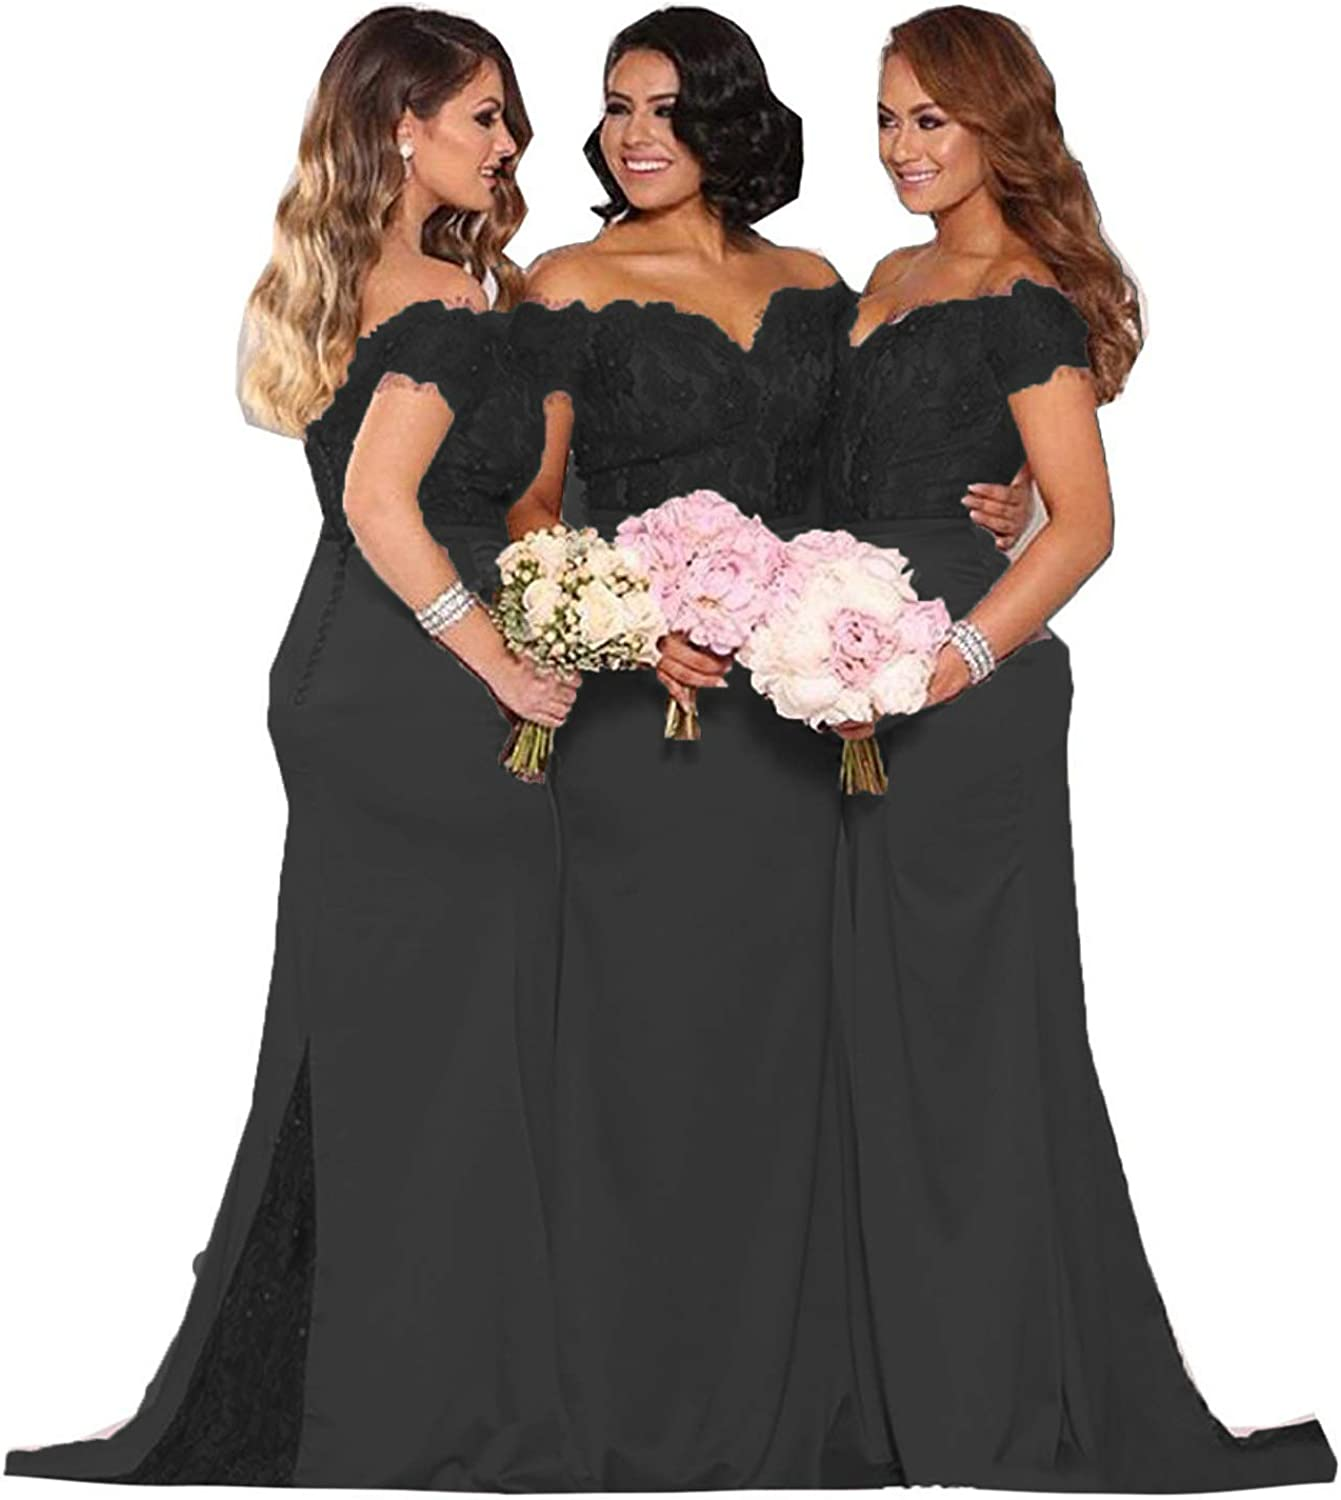 Fanciest Women's Lace Bridesmaid Dresses Long 2020 Formal Mermaid Maid of Honor Gowns